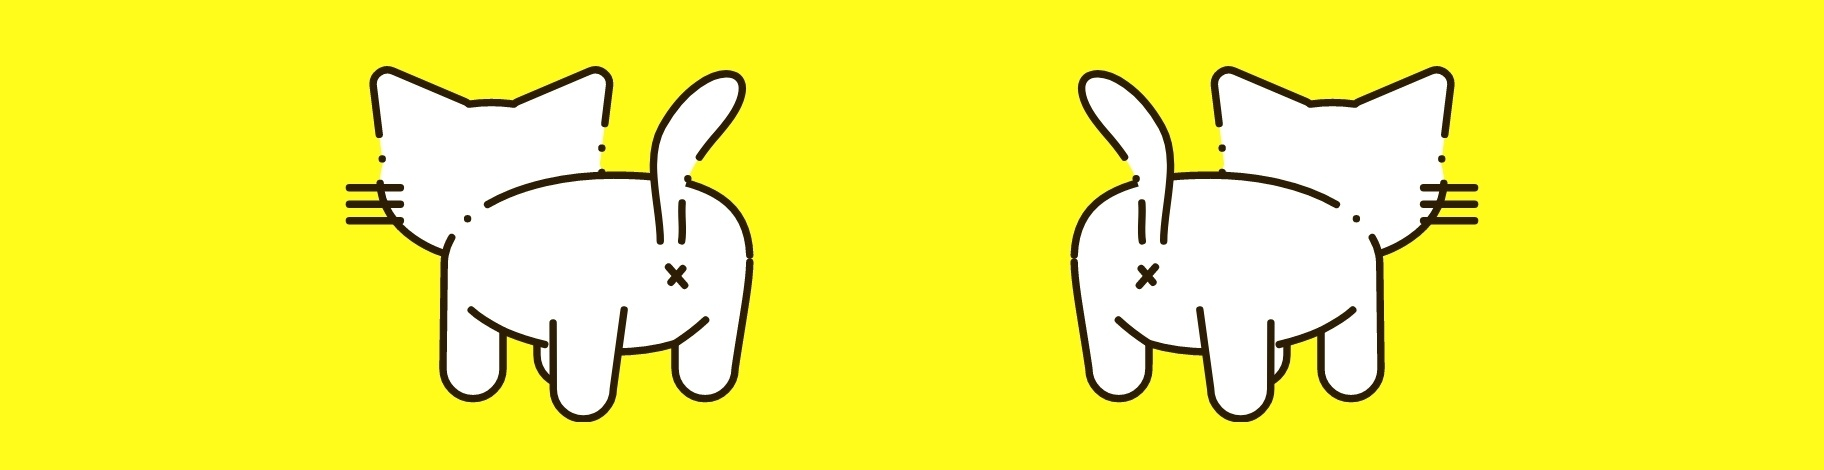 Two drawn cats as seen from behind on a yellow background